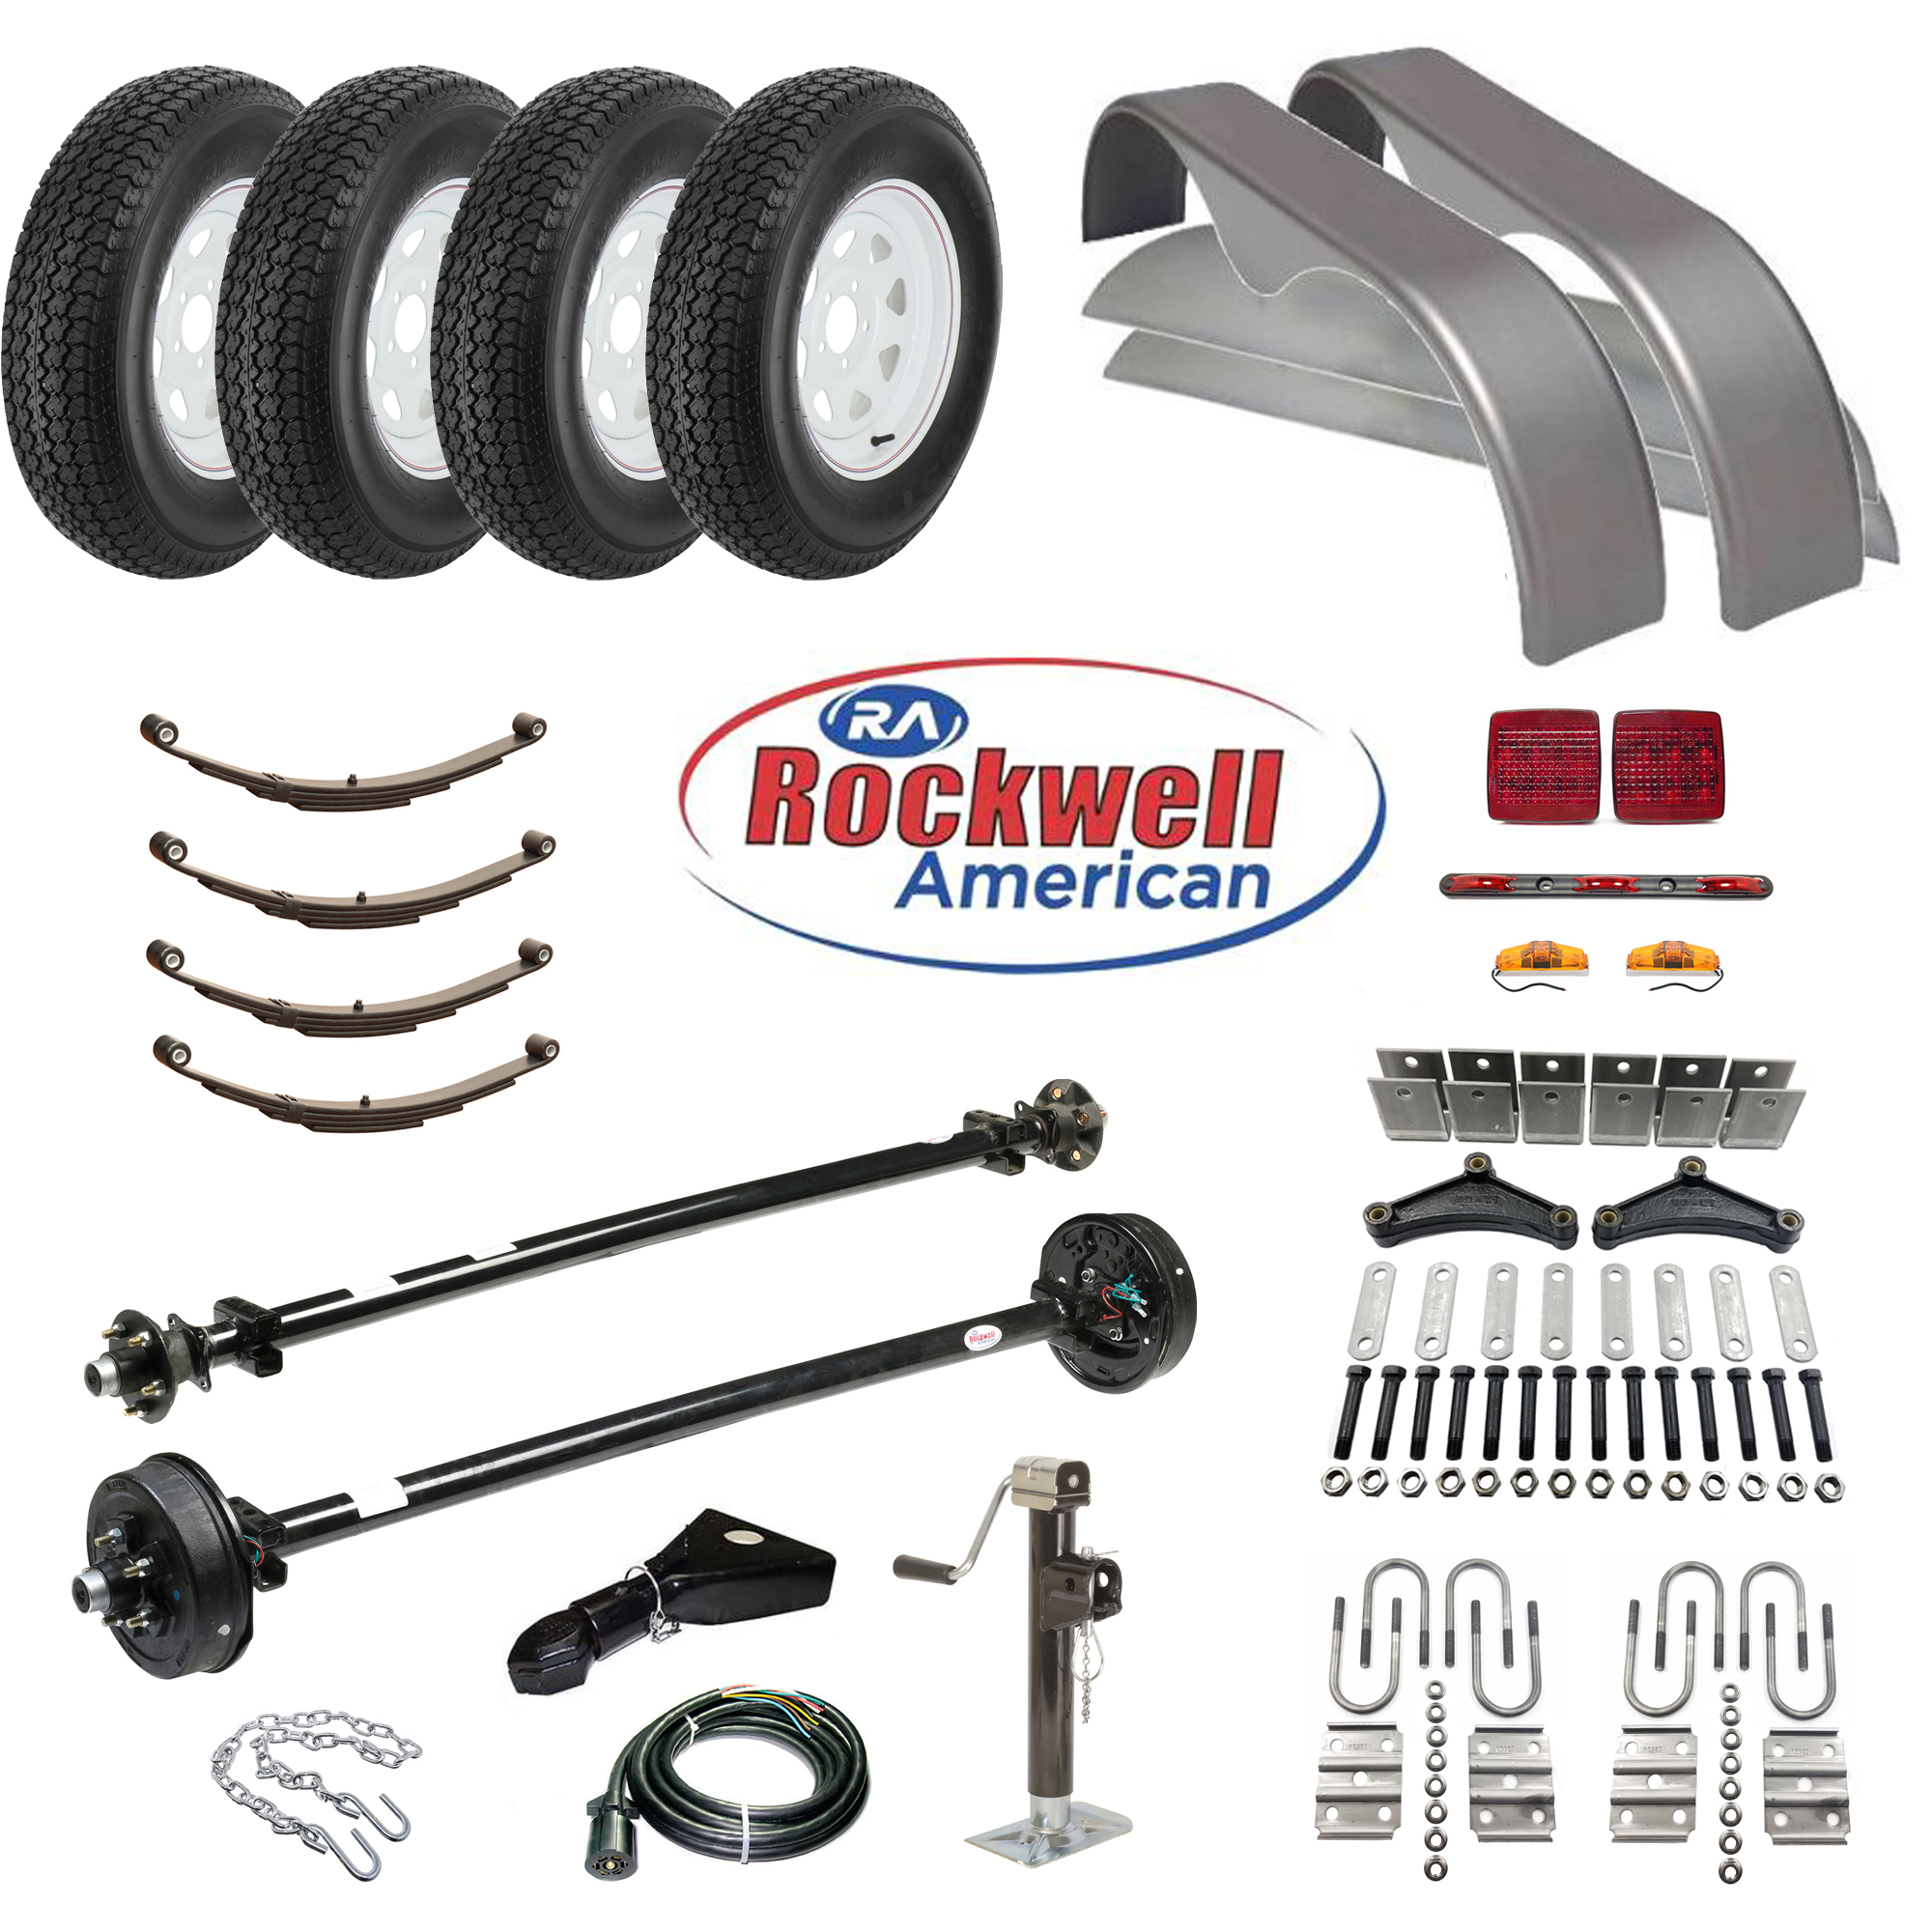 Tandem Axle Trailer Parts Kit - 7,000 lb Capacity - Brakes on 1 Axle